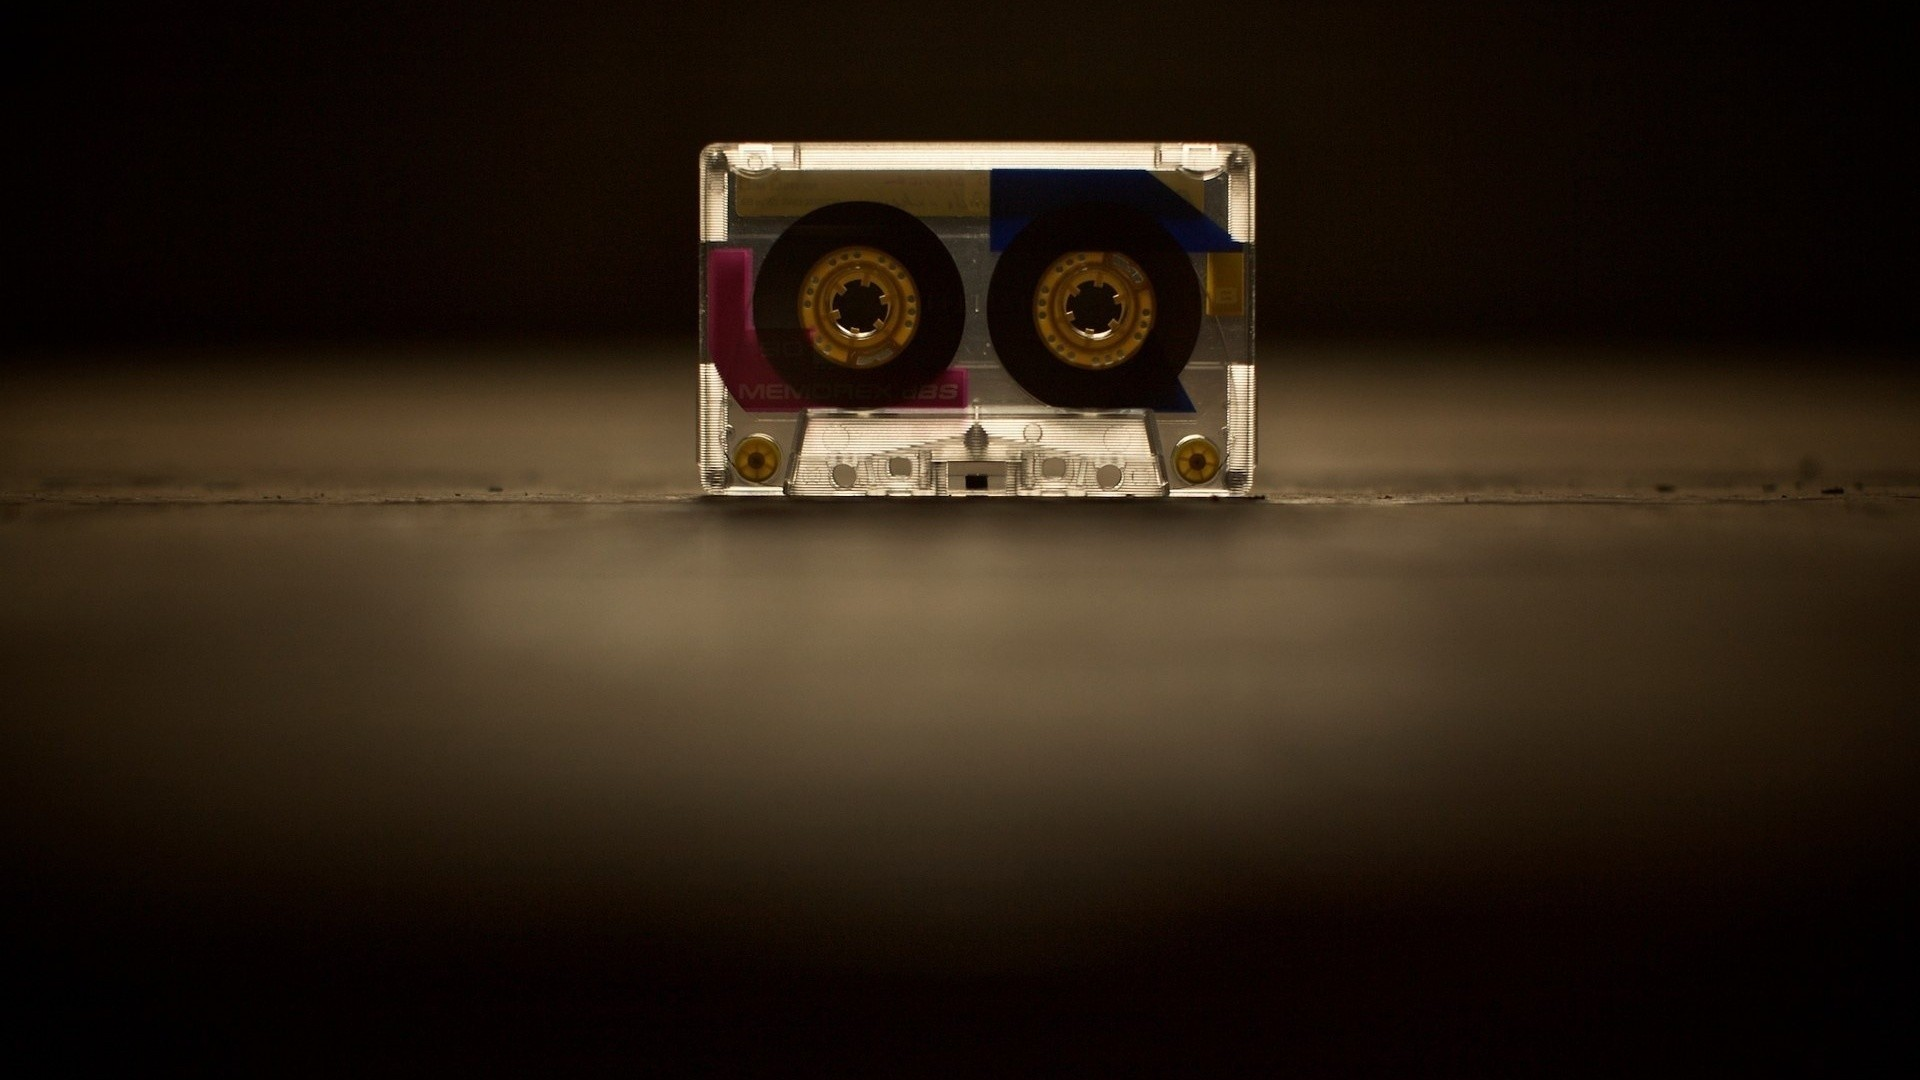 Cassette Tape Wallpaper and Background